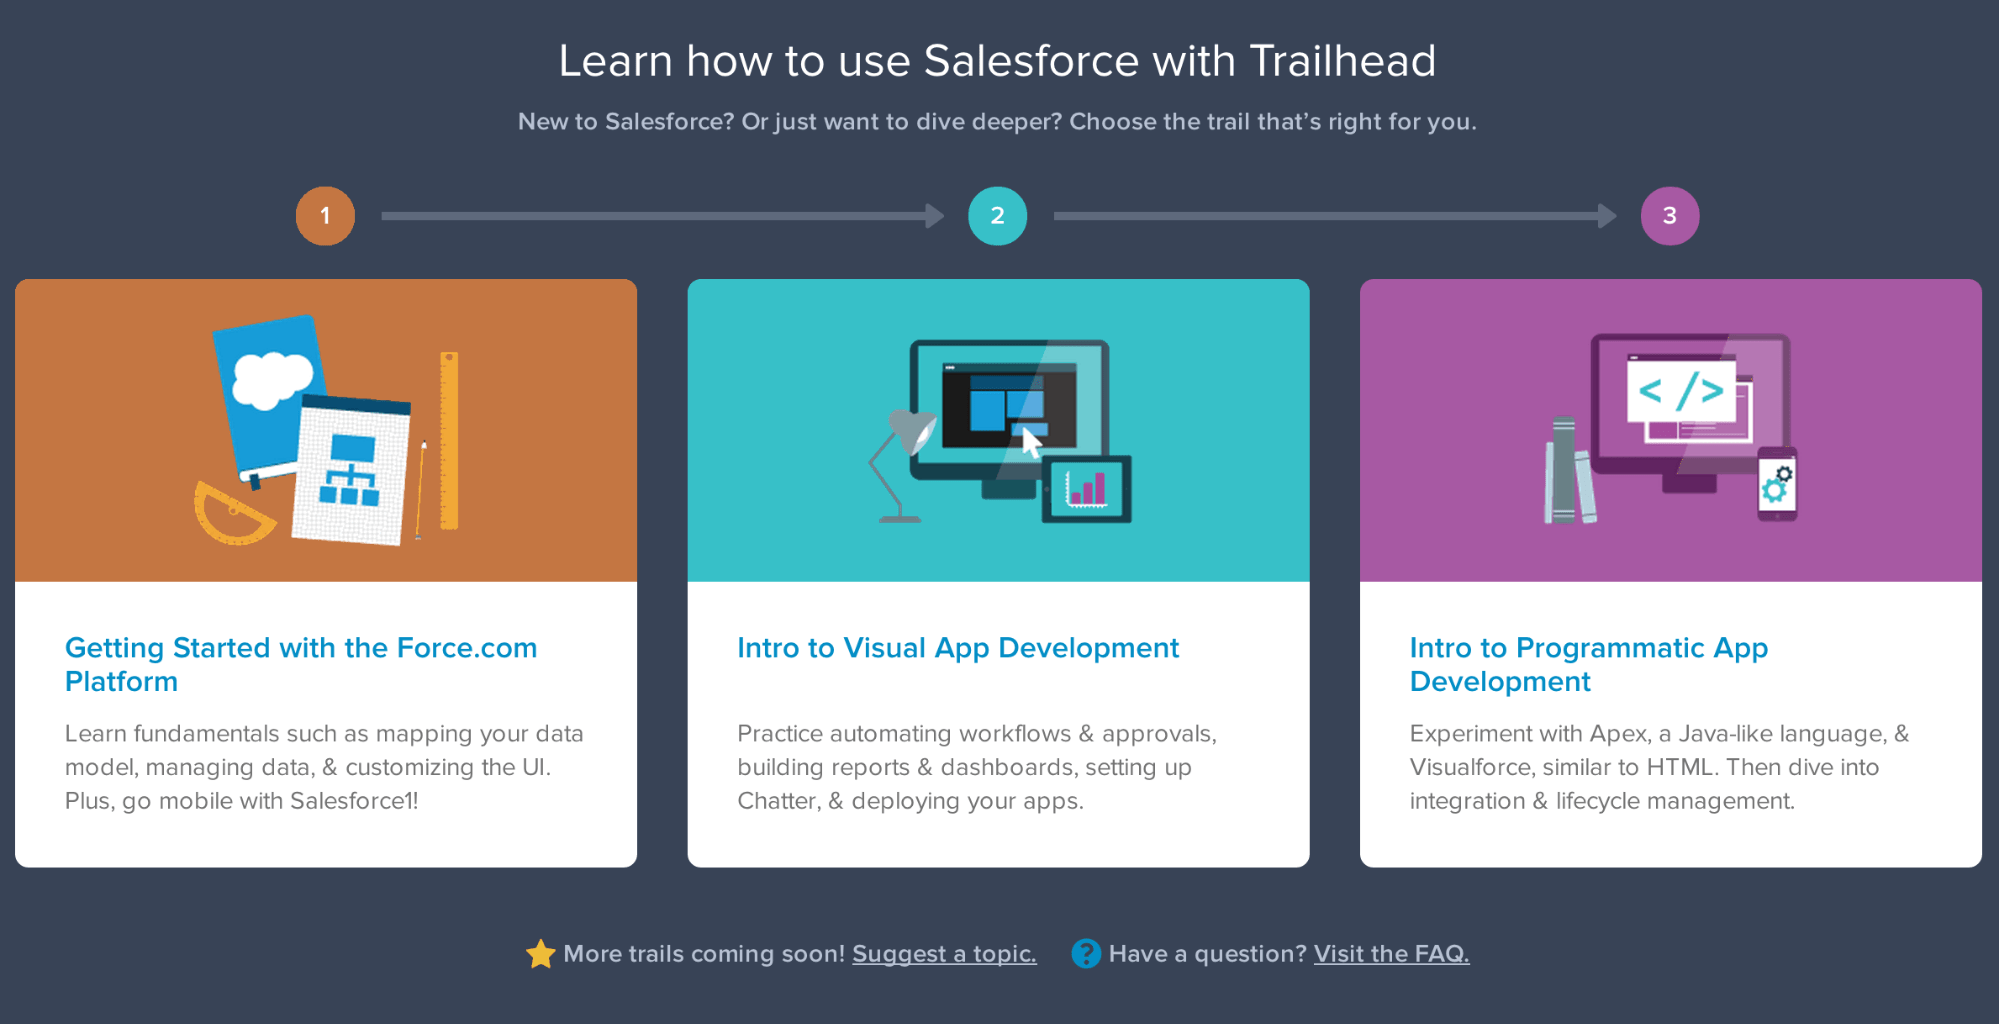 salesforce-trailhead-illustration